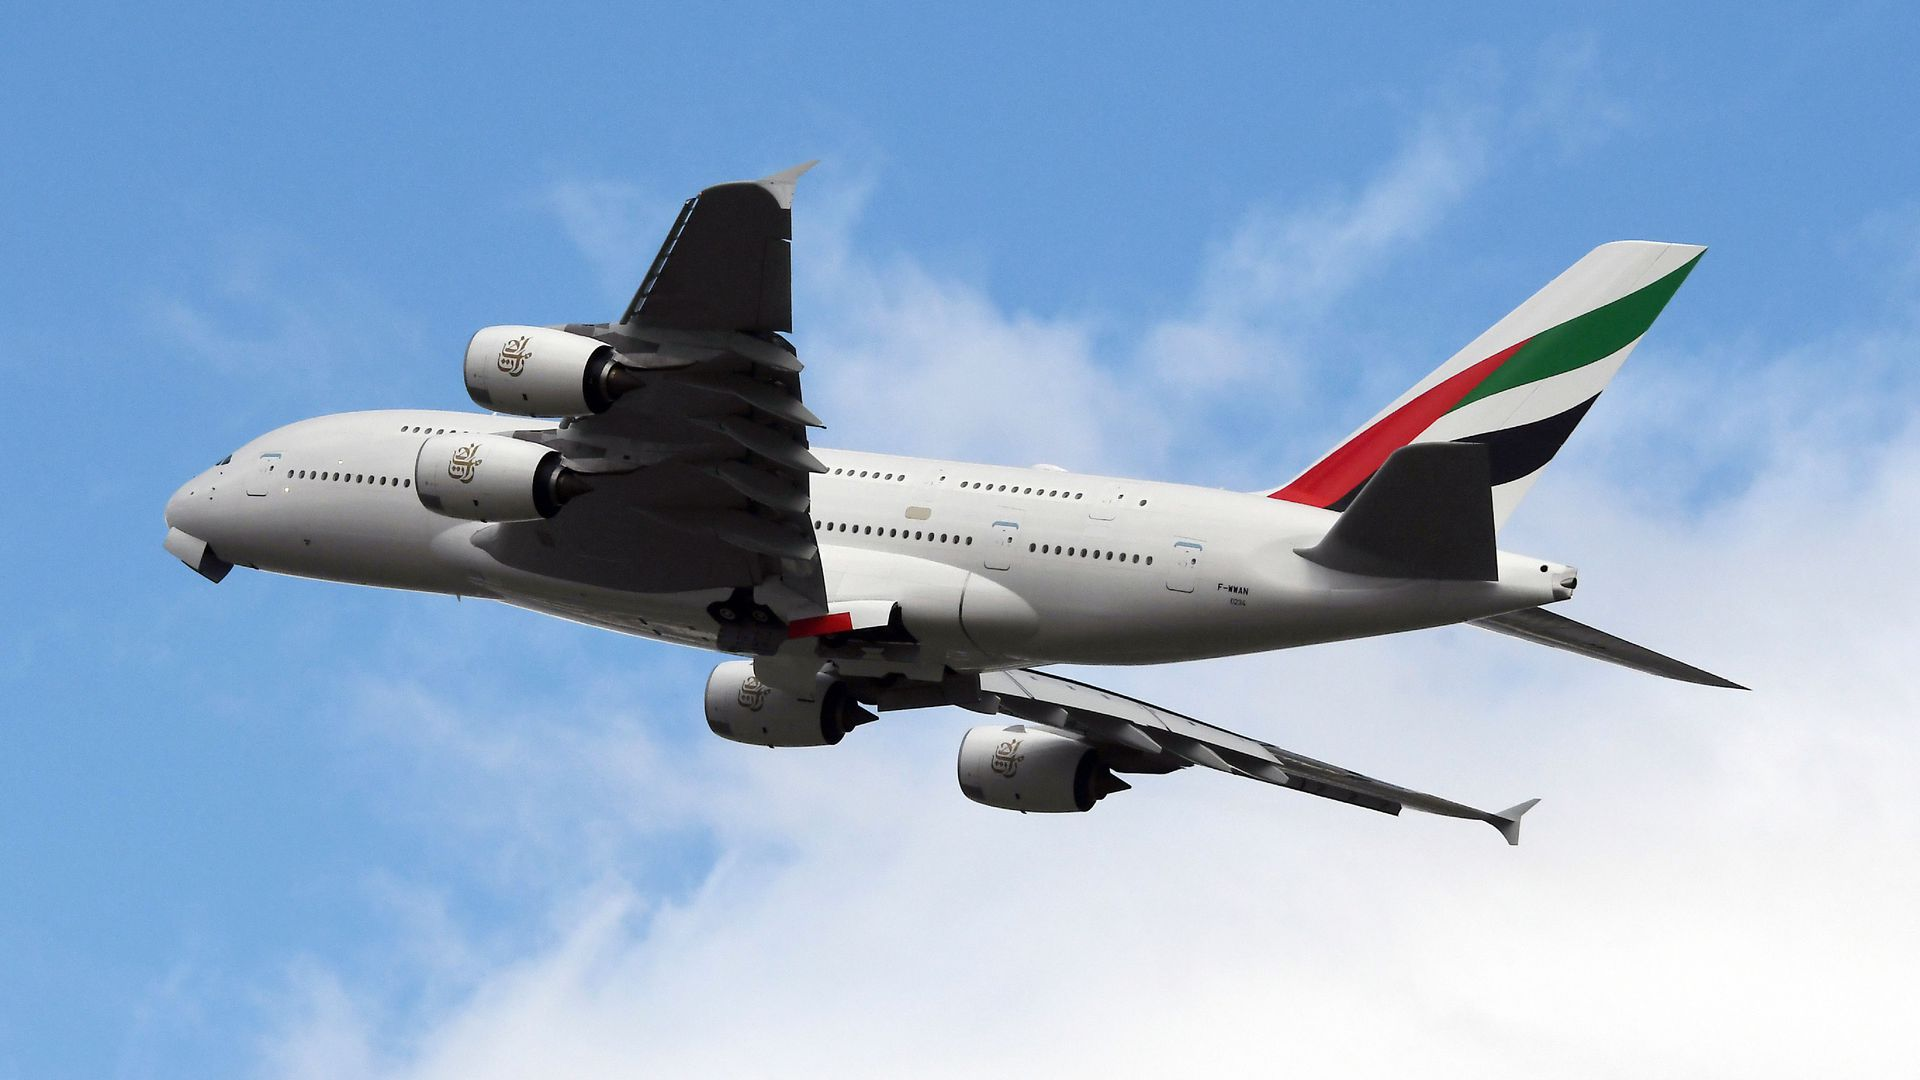 An Emirates Airbus A380 takes off